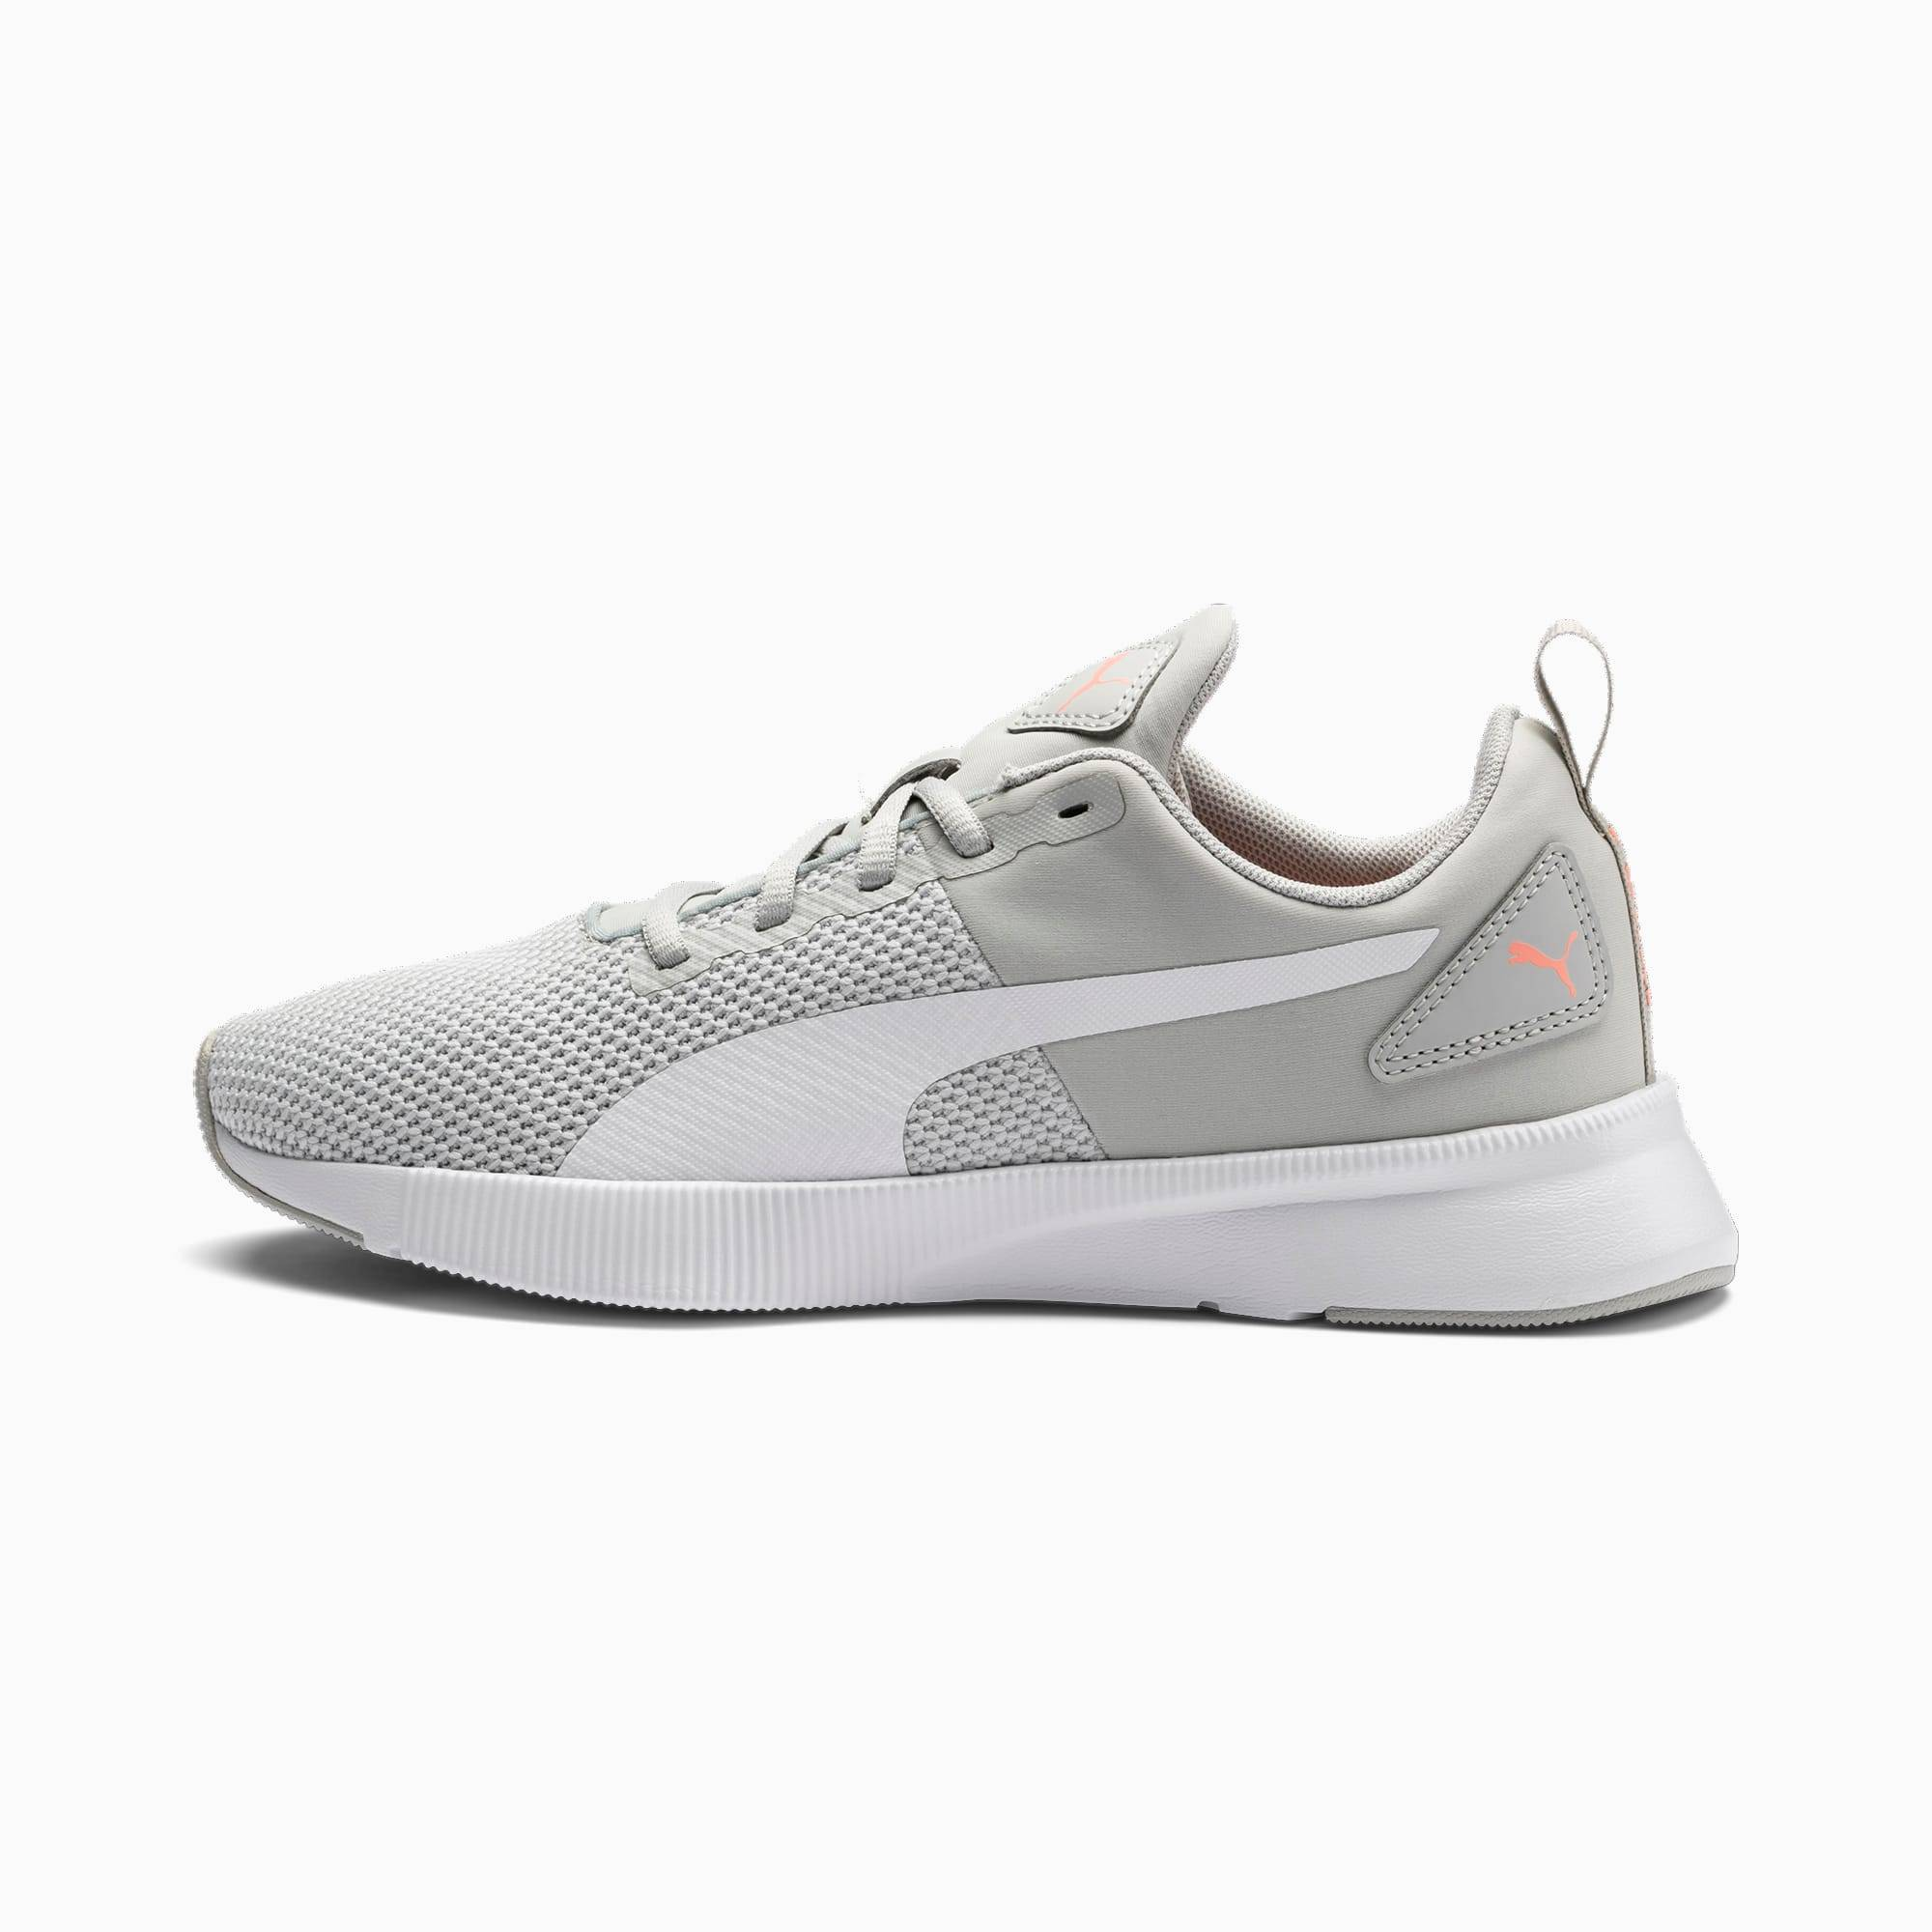 PUMA Chaussure de course Flyer Runner, Blanc/Rose/Gris, Taille 42.5, Chaussures